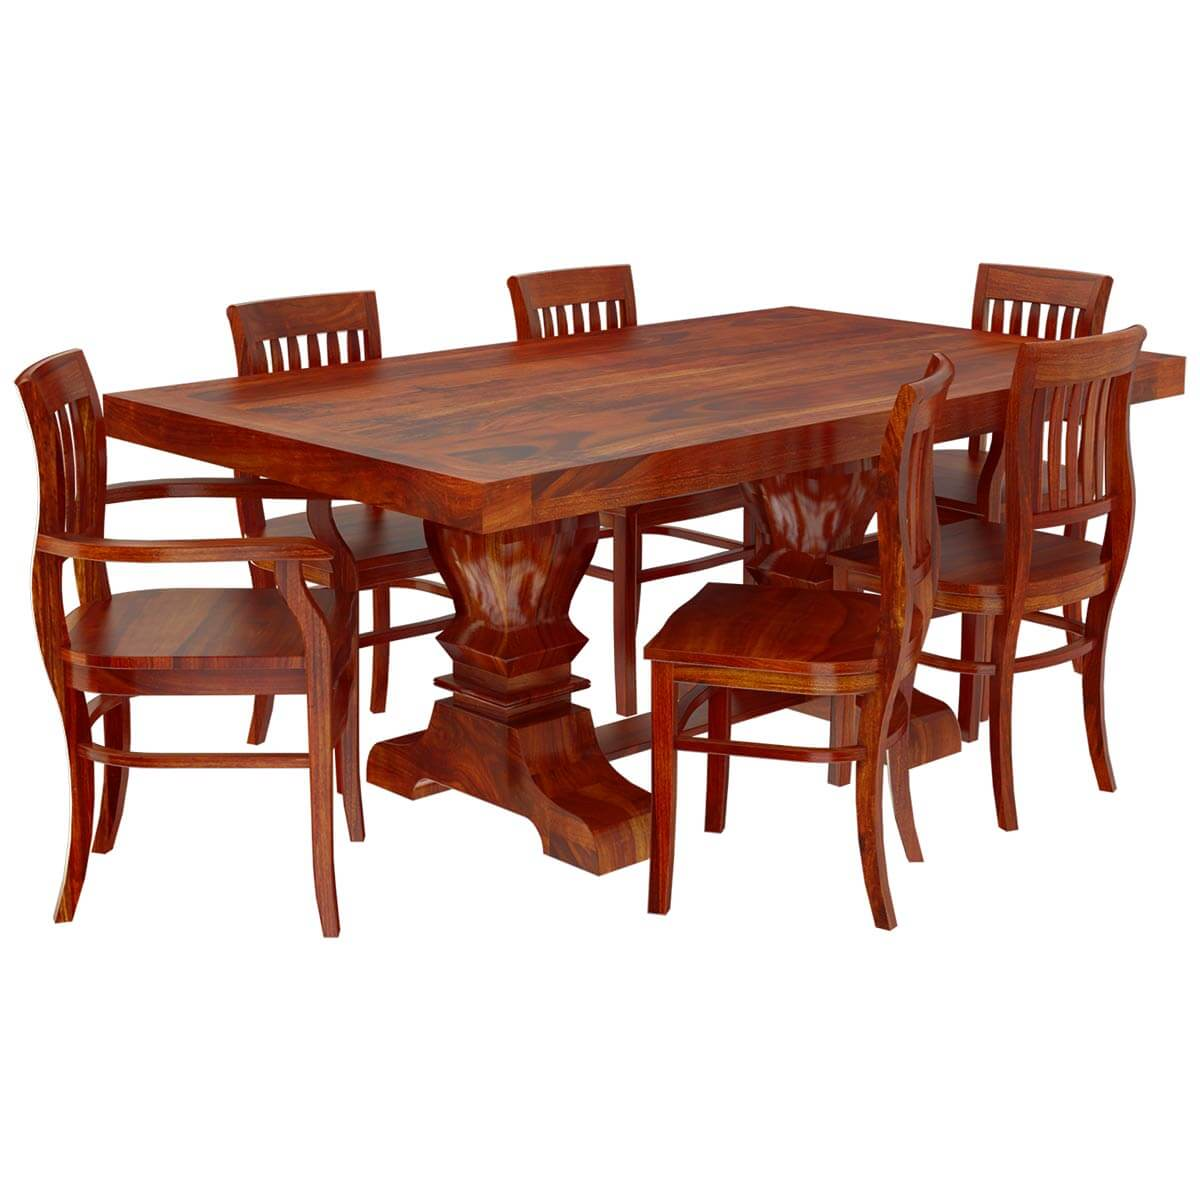 Solid Wood 7 Piece Trestle Pedestal Dining Table Barrel Back Chairs